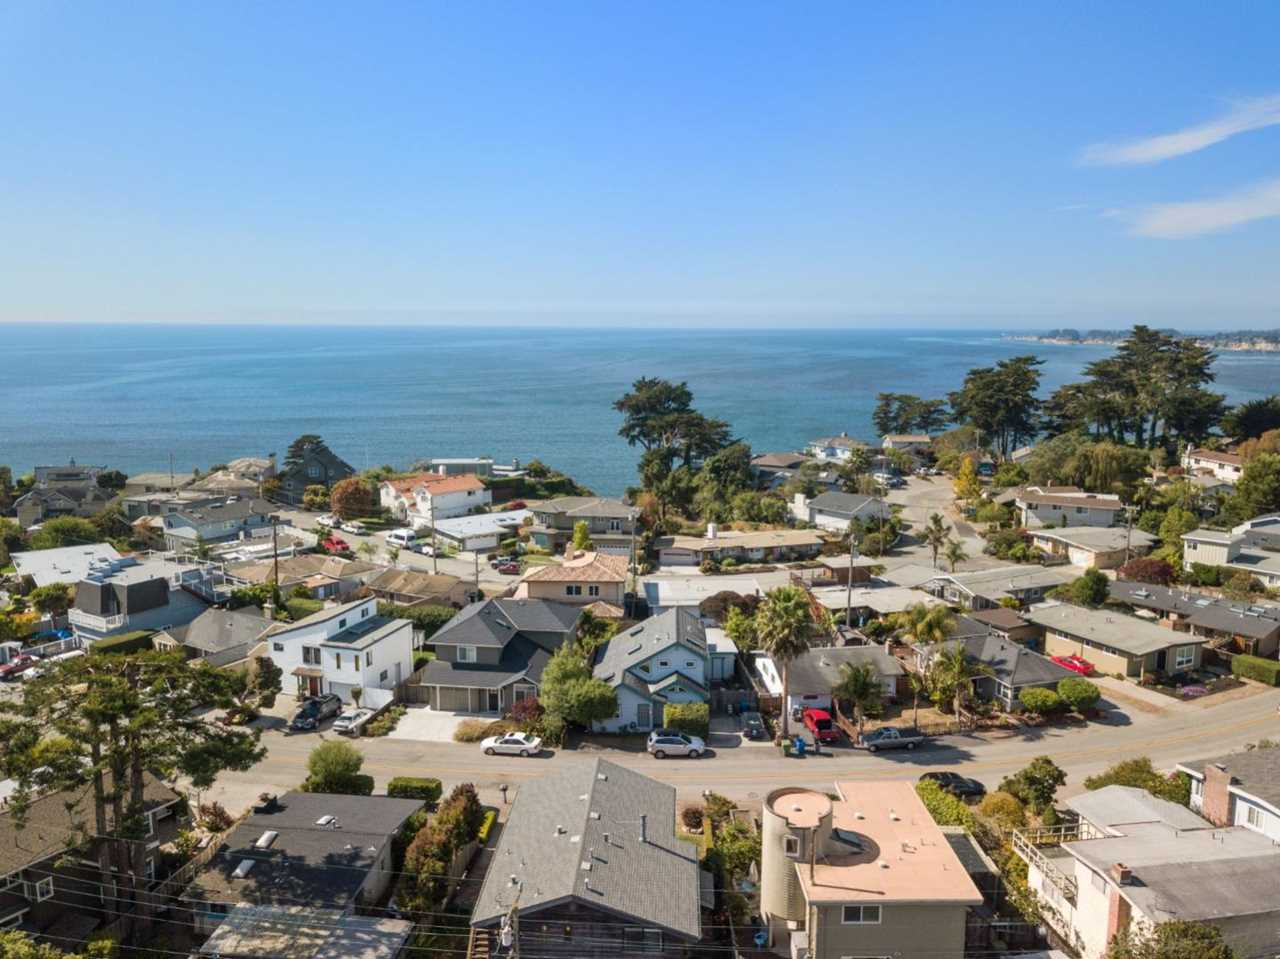 524 Middlefield Dr,APTOS,CA,homes for sale in APTOS Photo 1